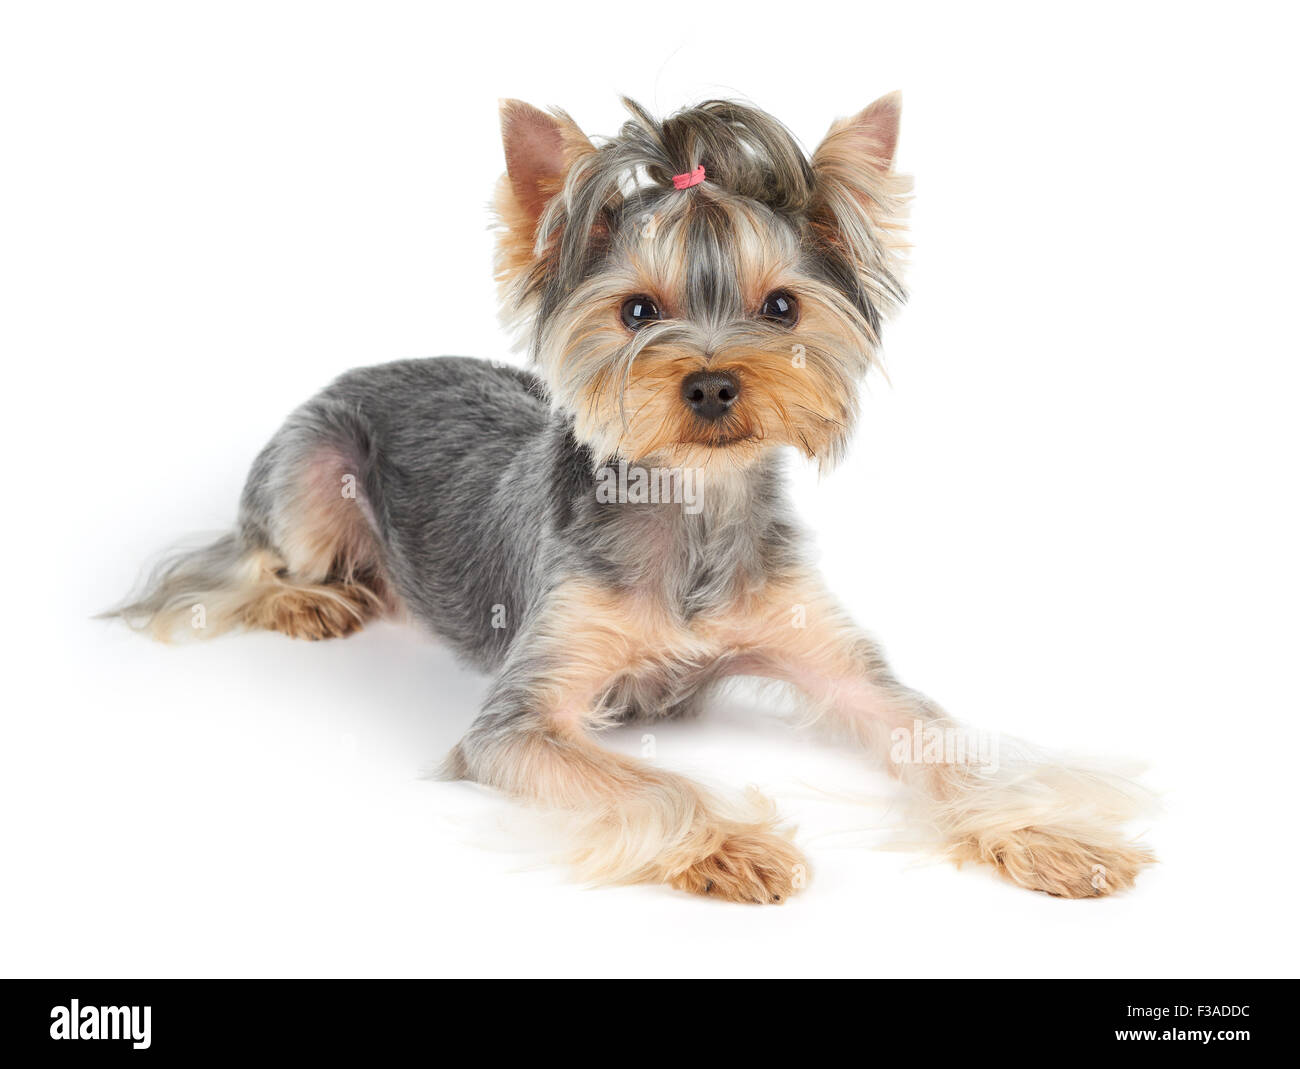 Yorkshire Terrier With Short Hair Lies On White Background Stock